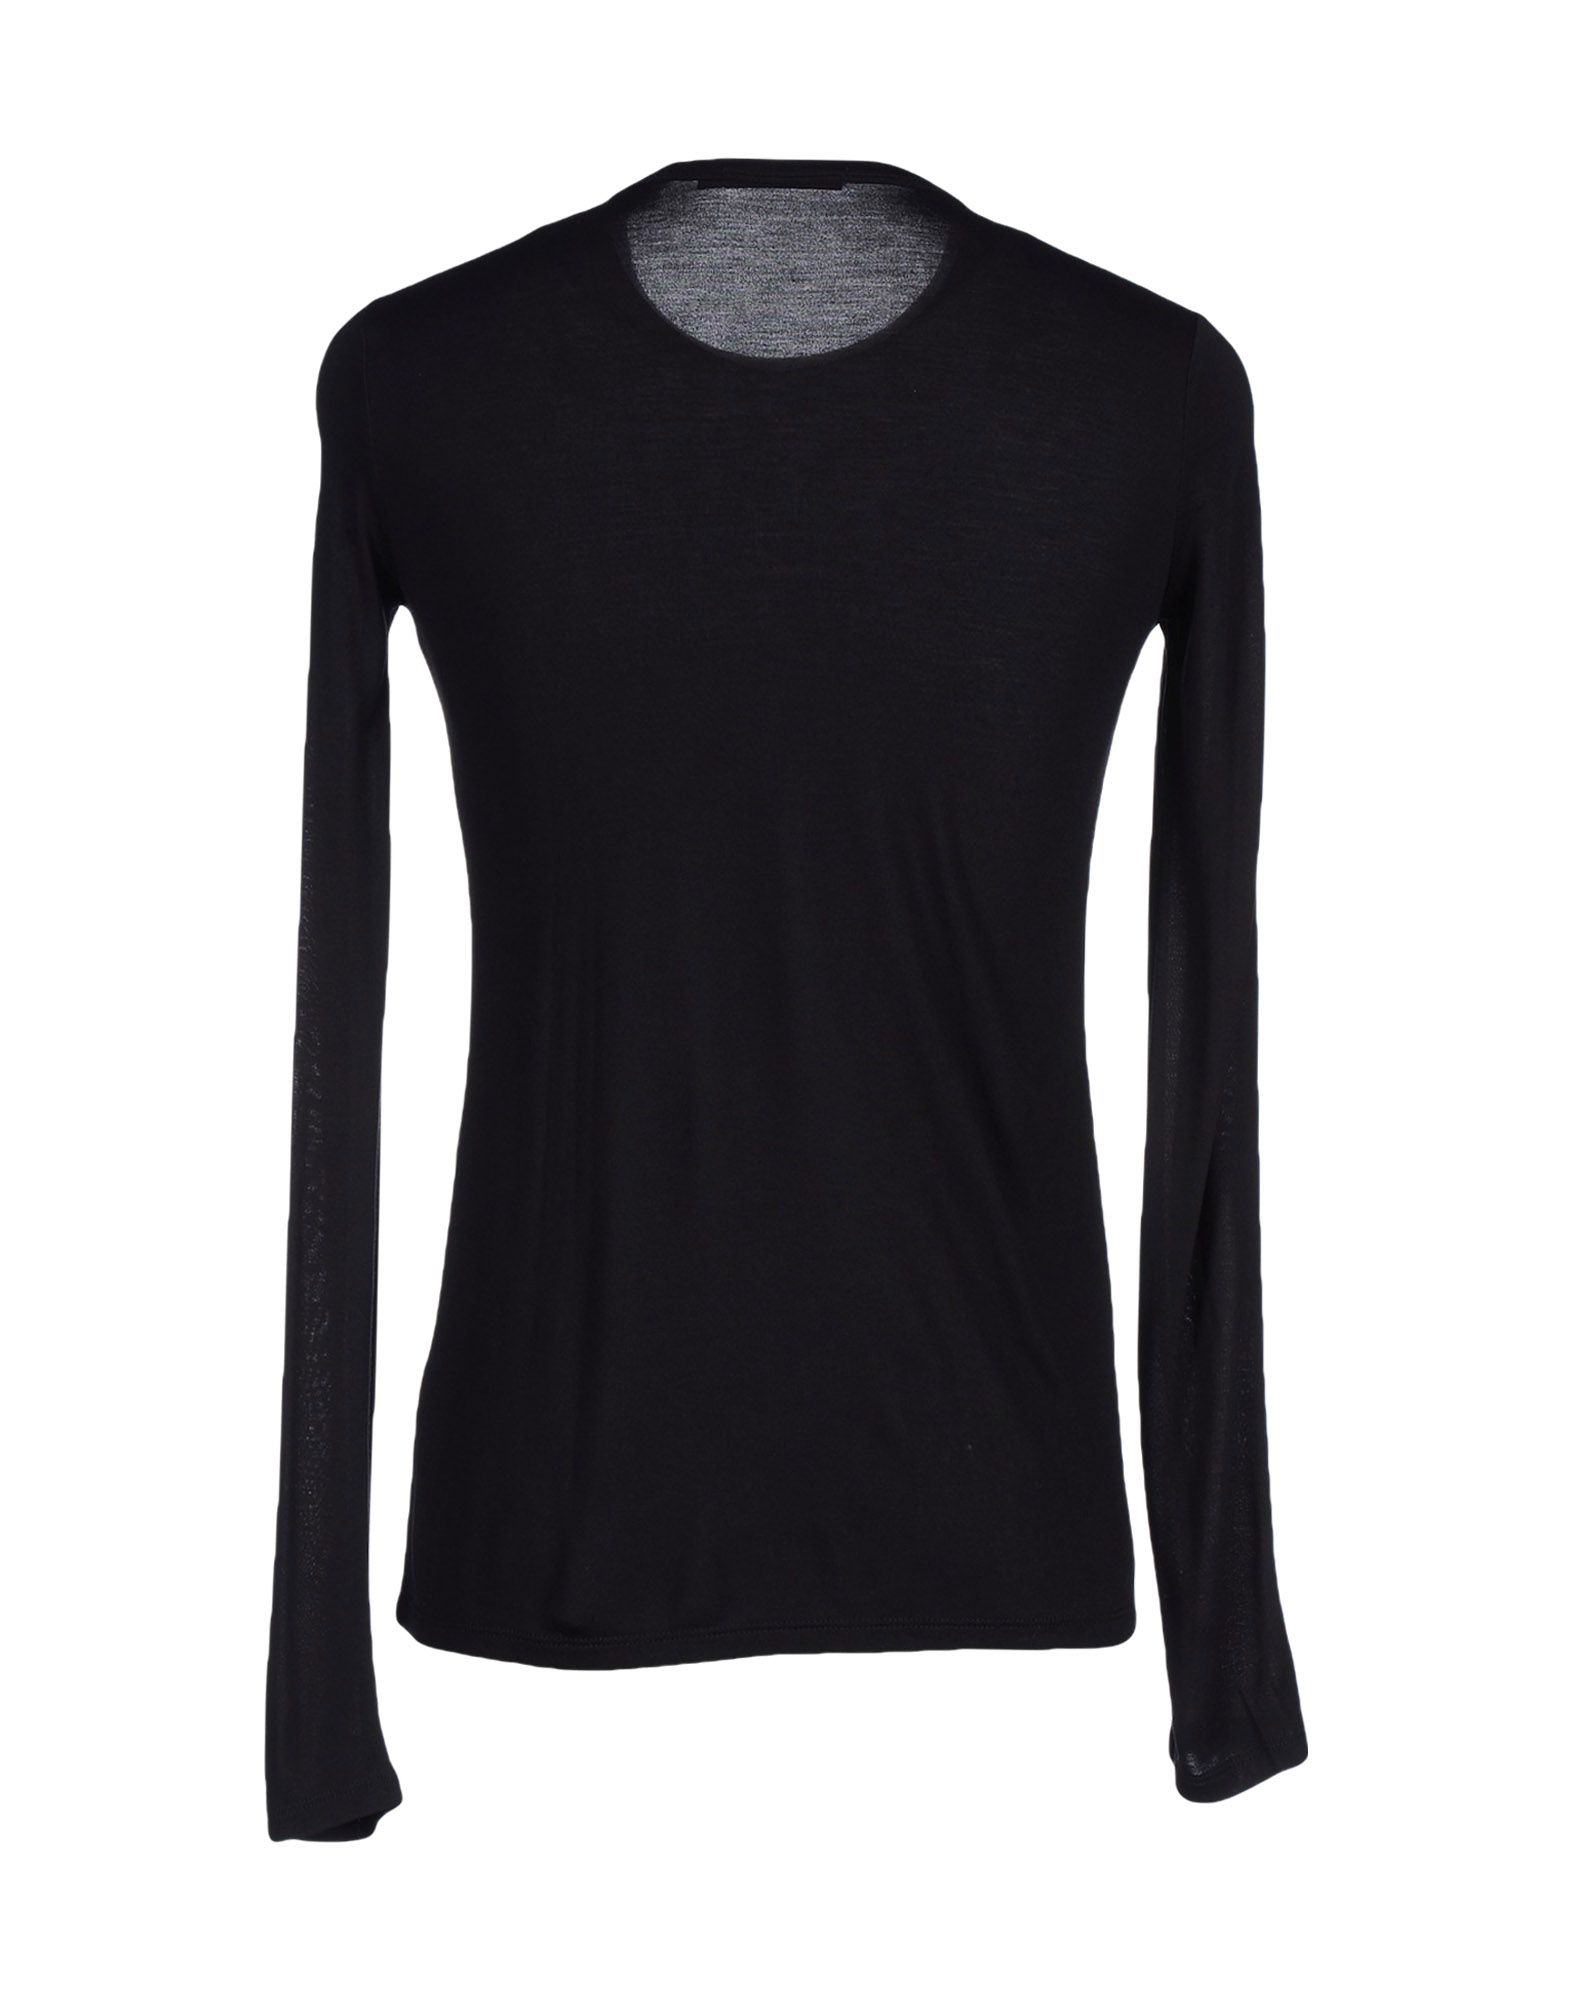 T by alexander wang t shirt in black for men lyst for T by alexander wang t shirt